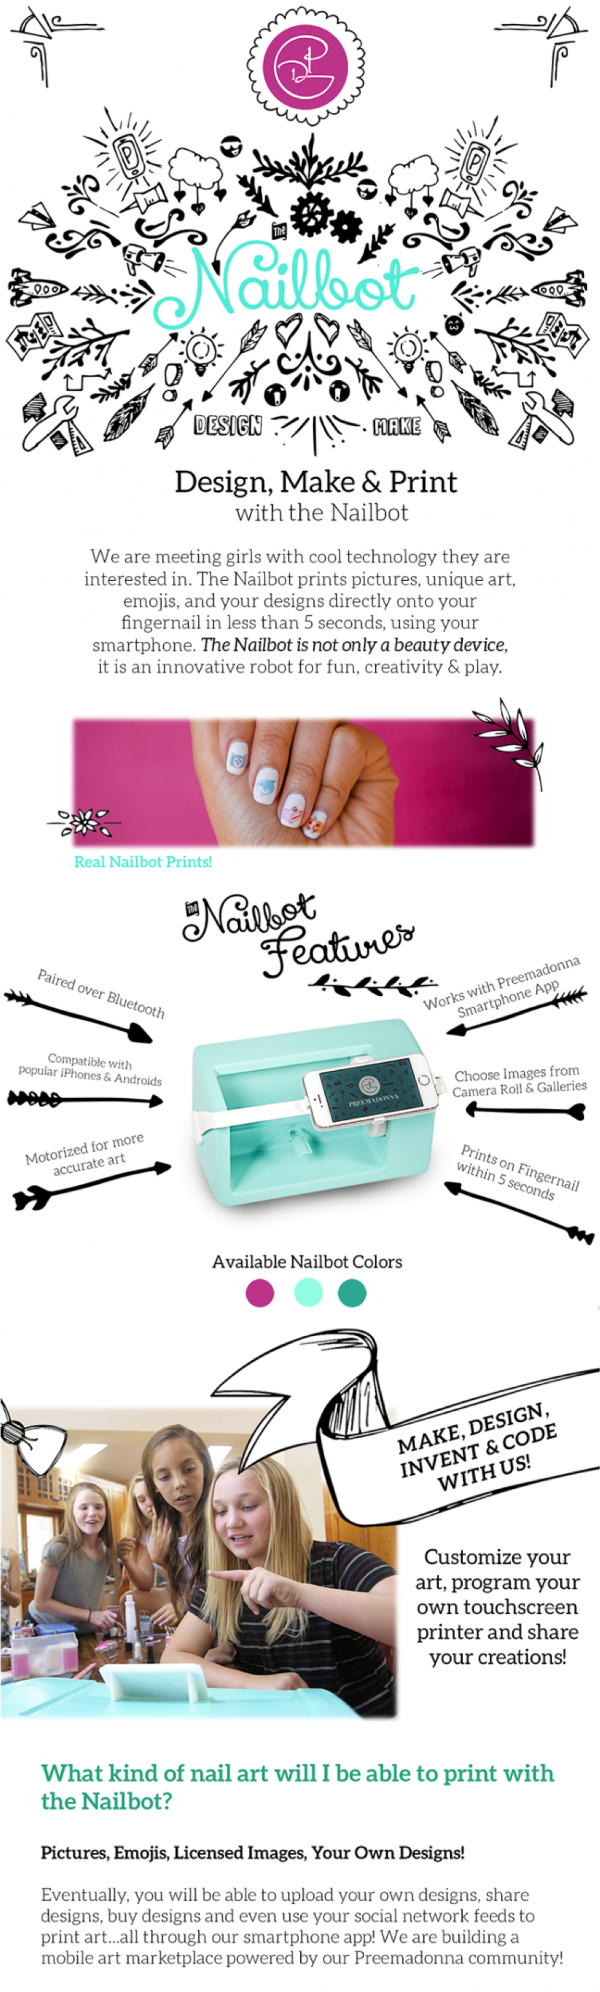 Design, Make, and Print with the Nailbot. Coolest Invention Ever ...